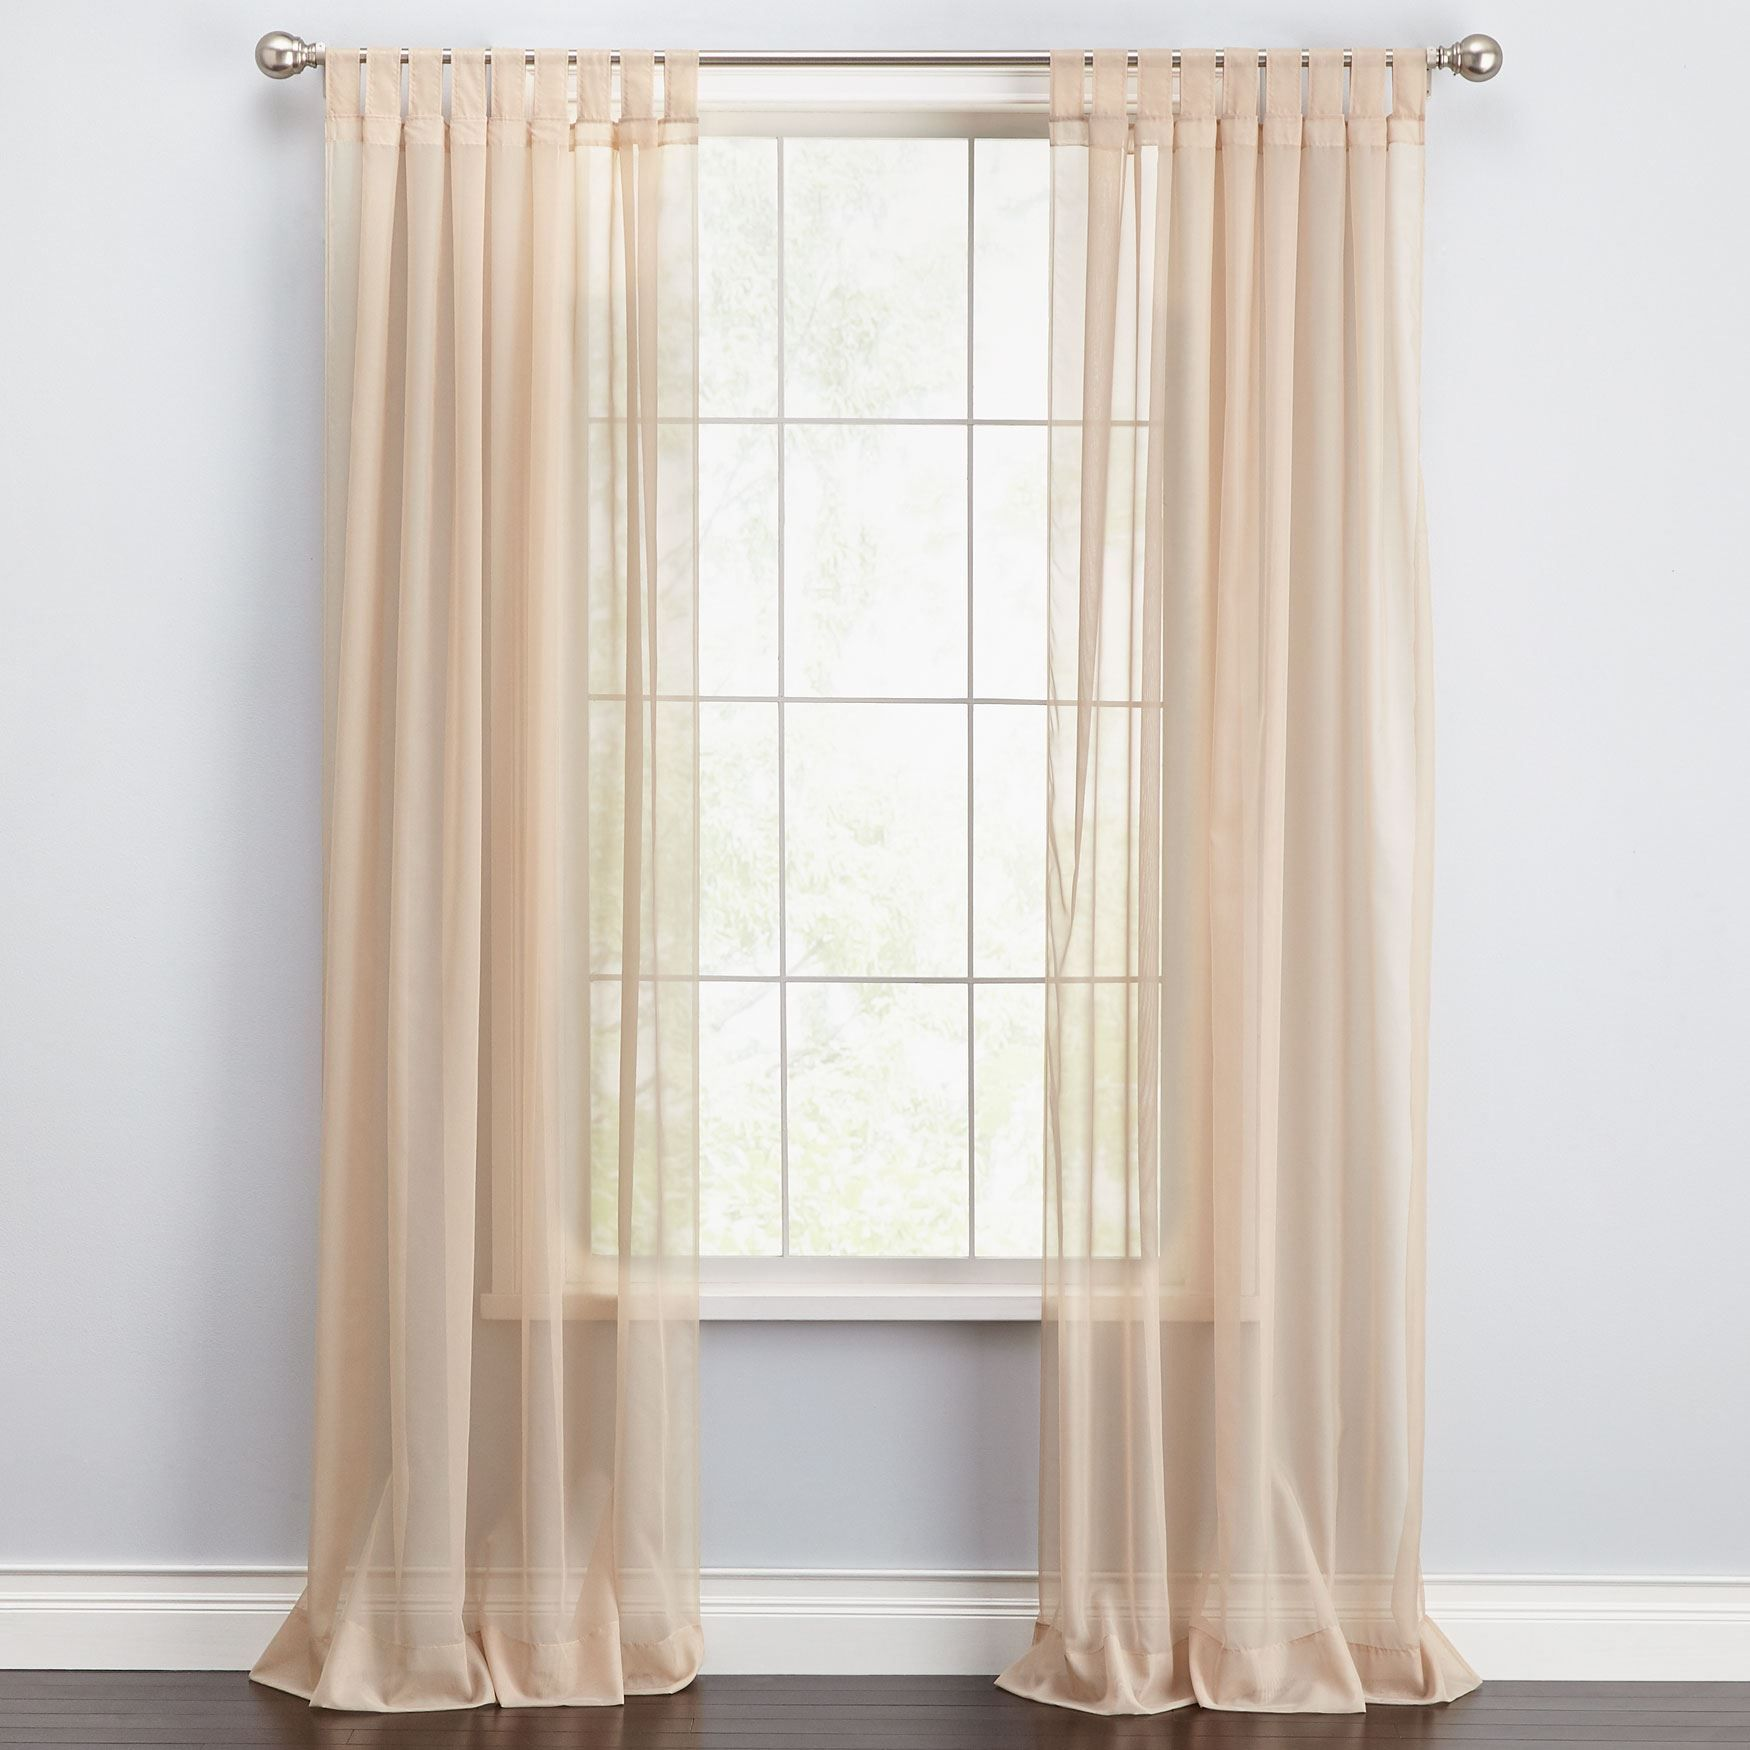 Brylane Home Sheer Curtains